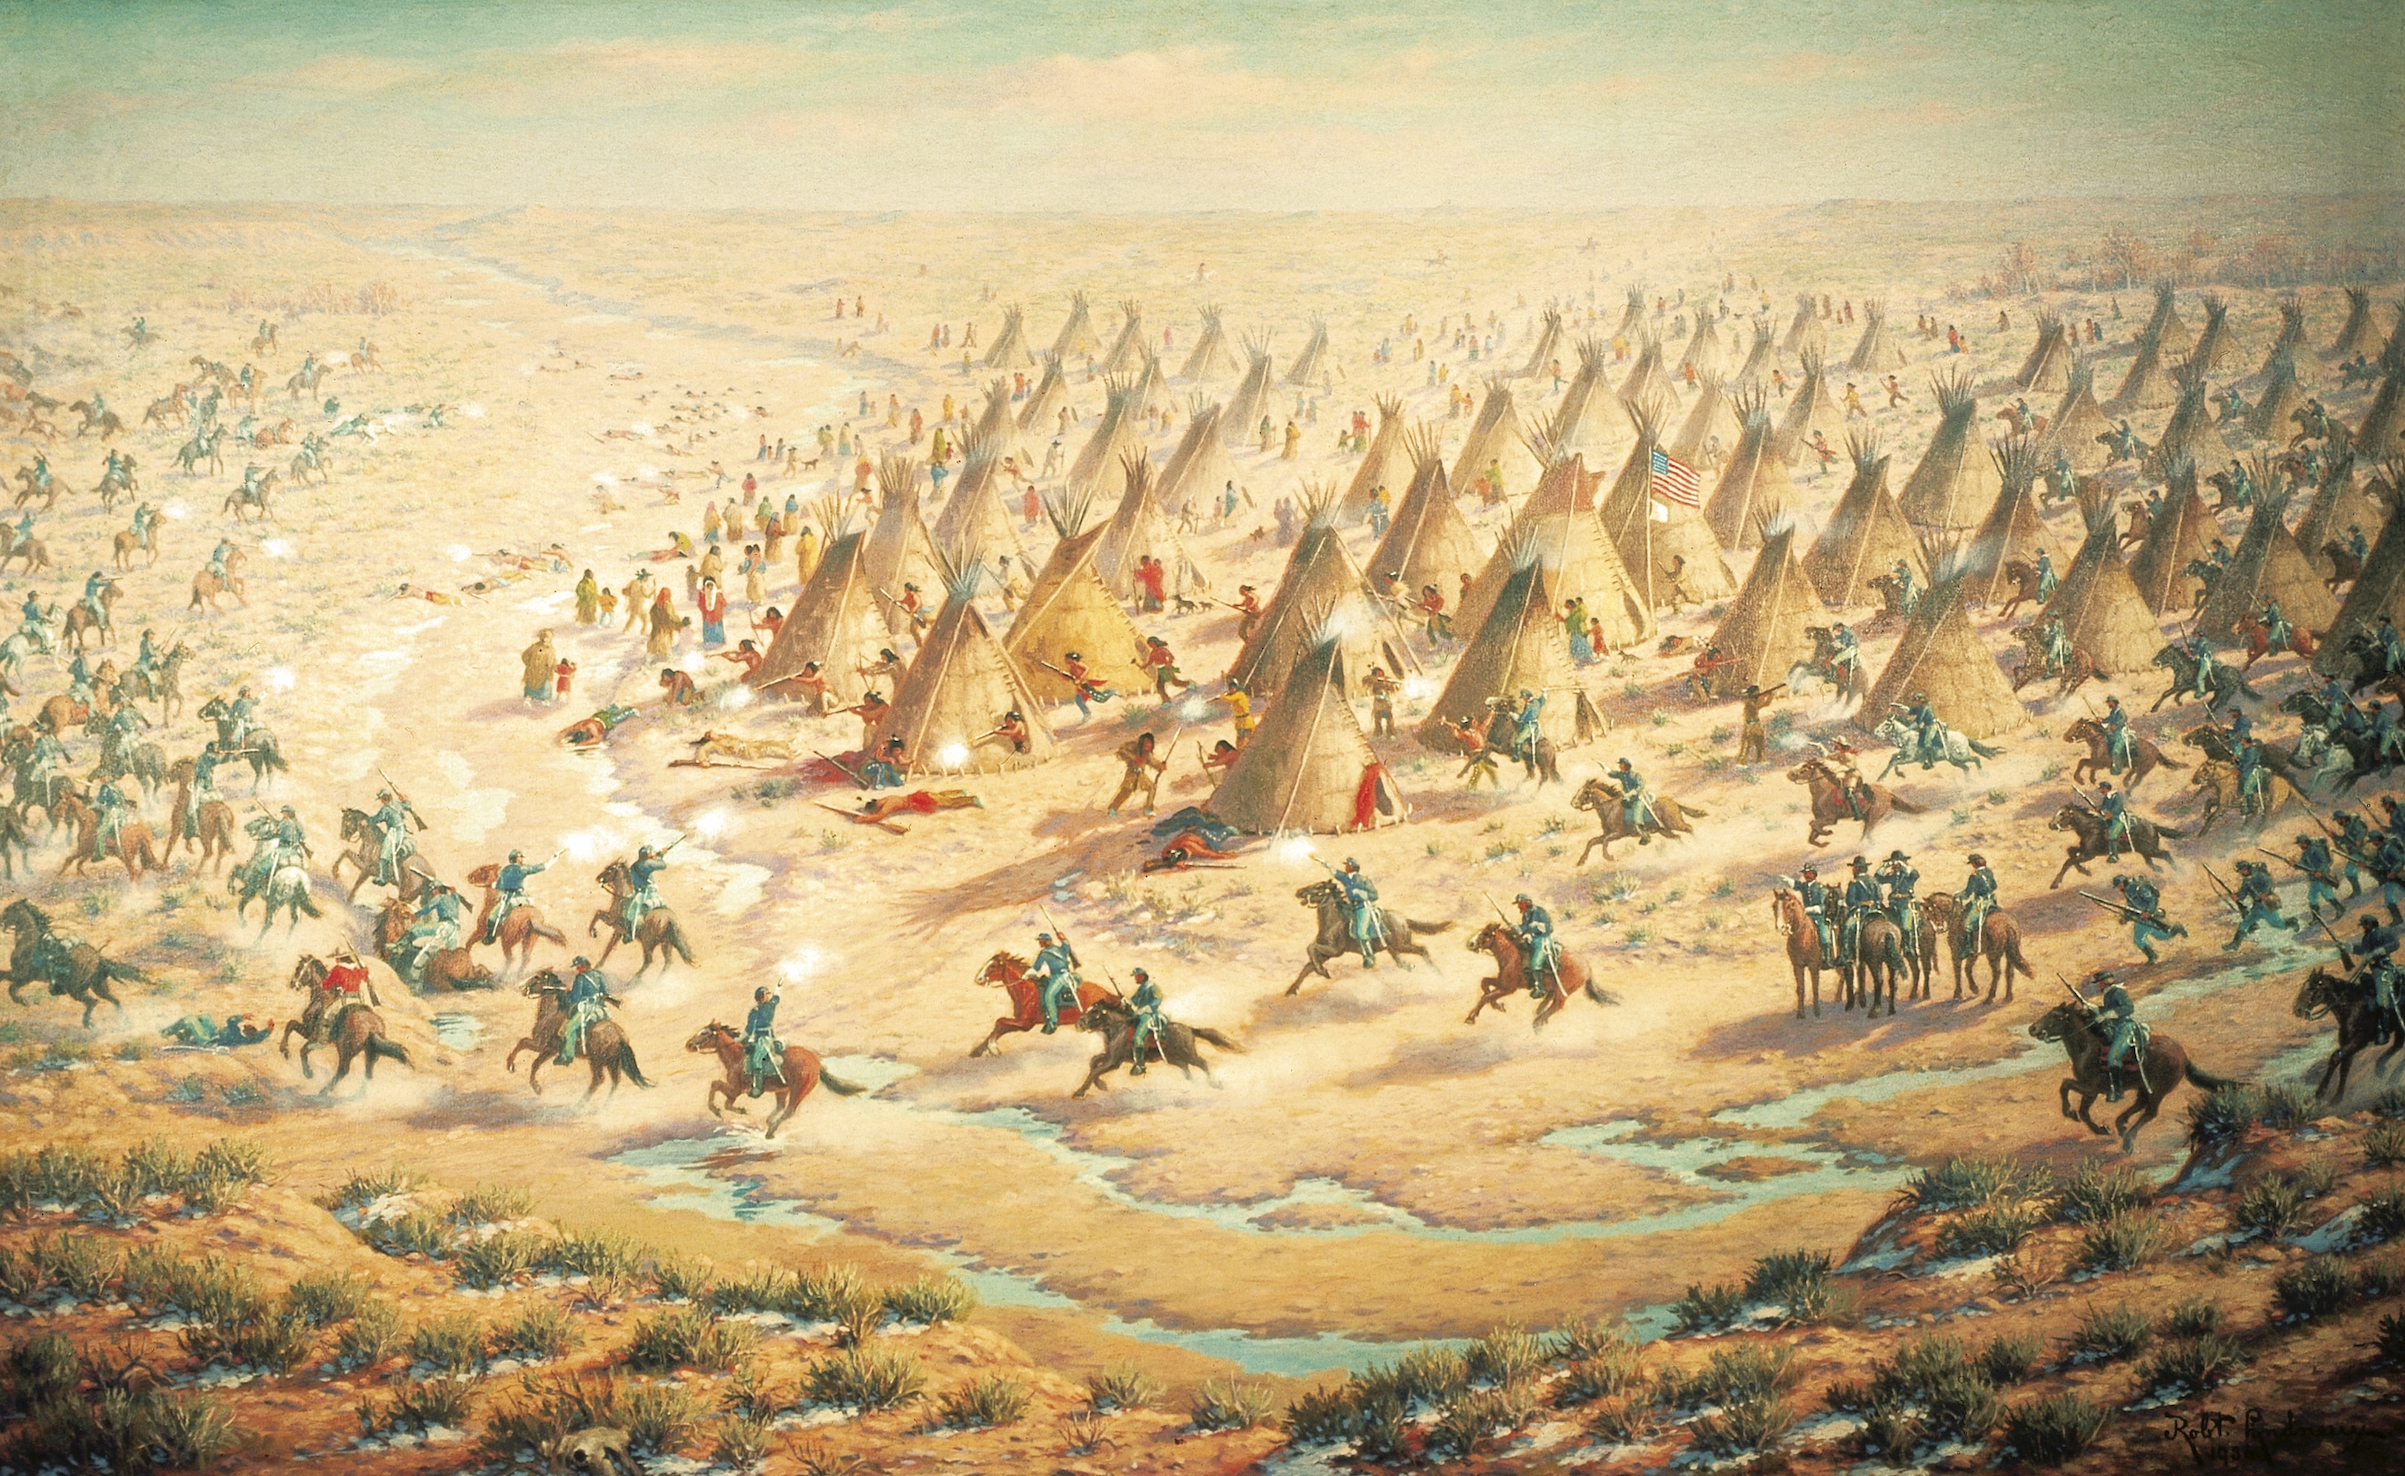 Sand Creek Massacre, Nov. 29, 1864, by Robert Lindneux.